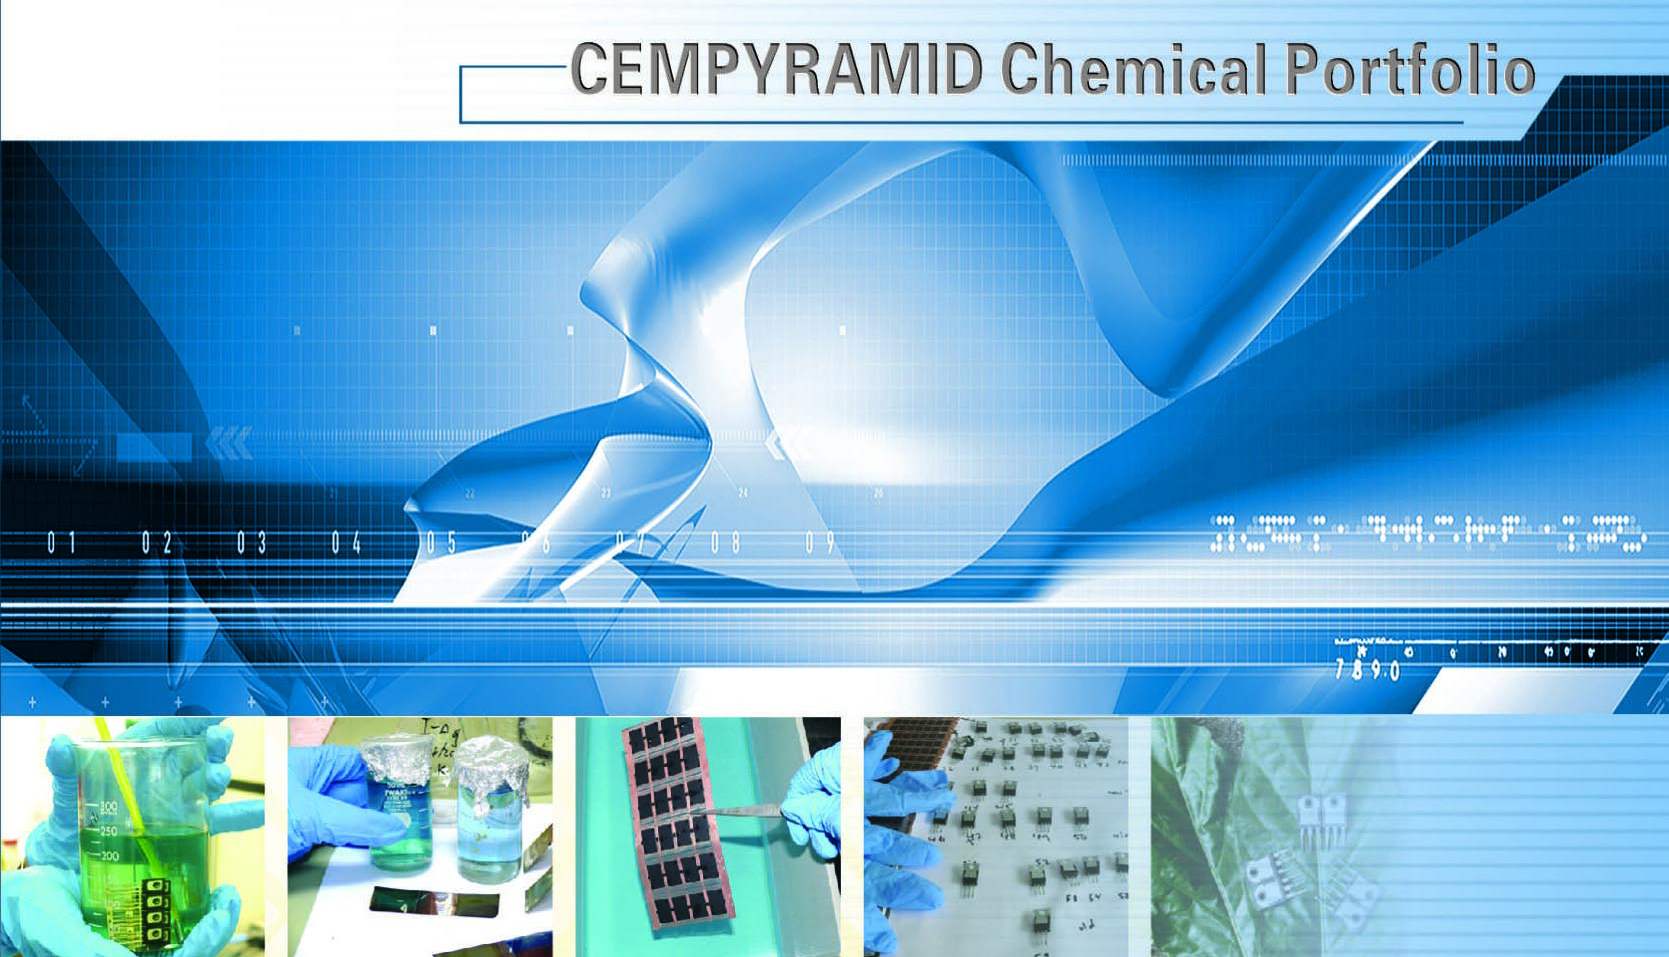 CEMPYRAMID Product Catalogue 2010